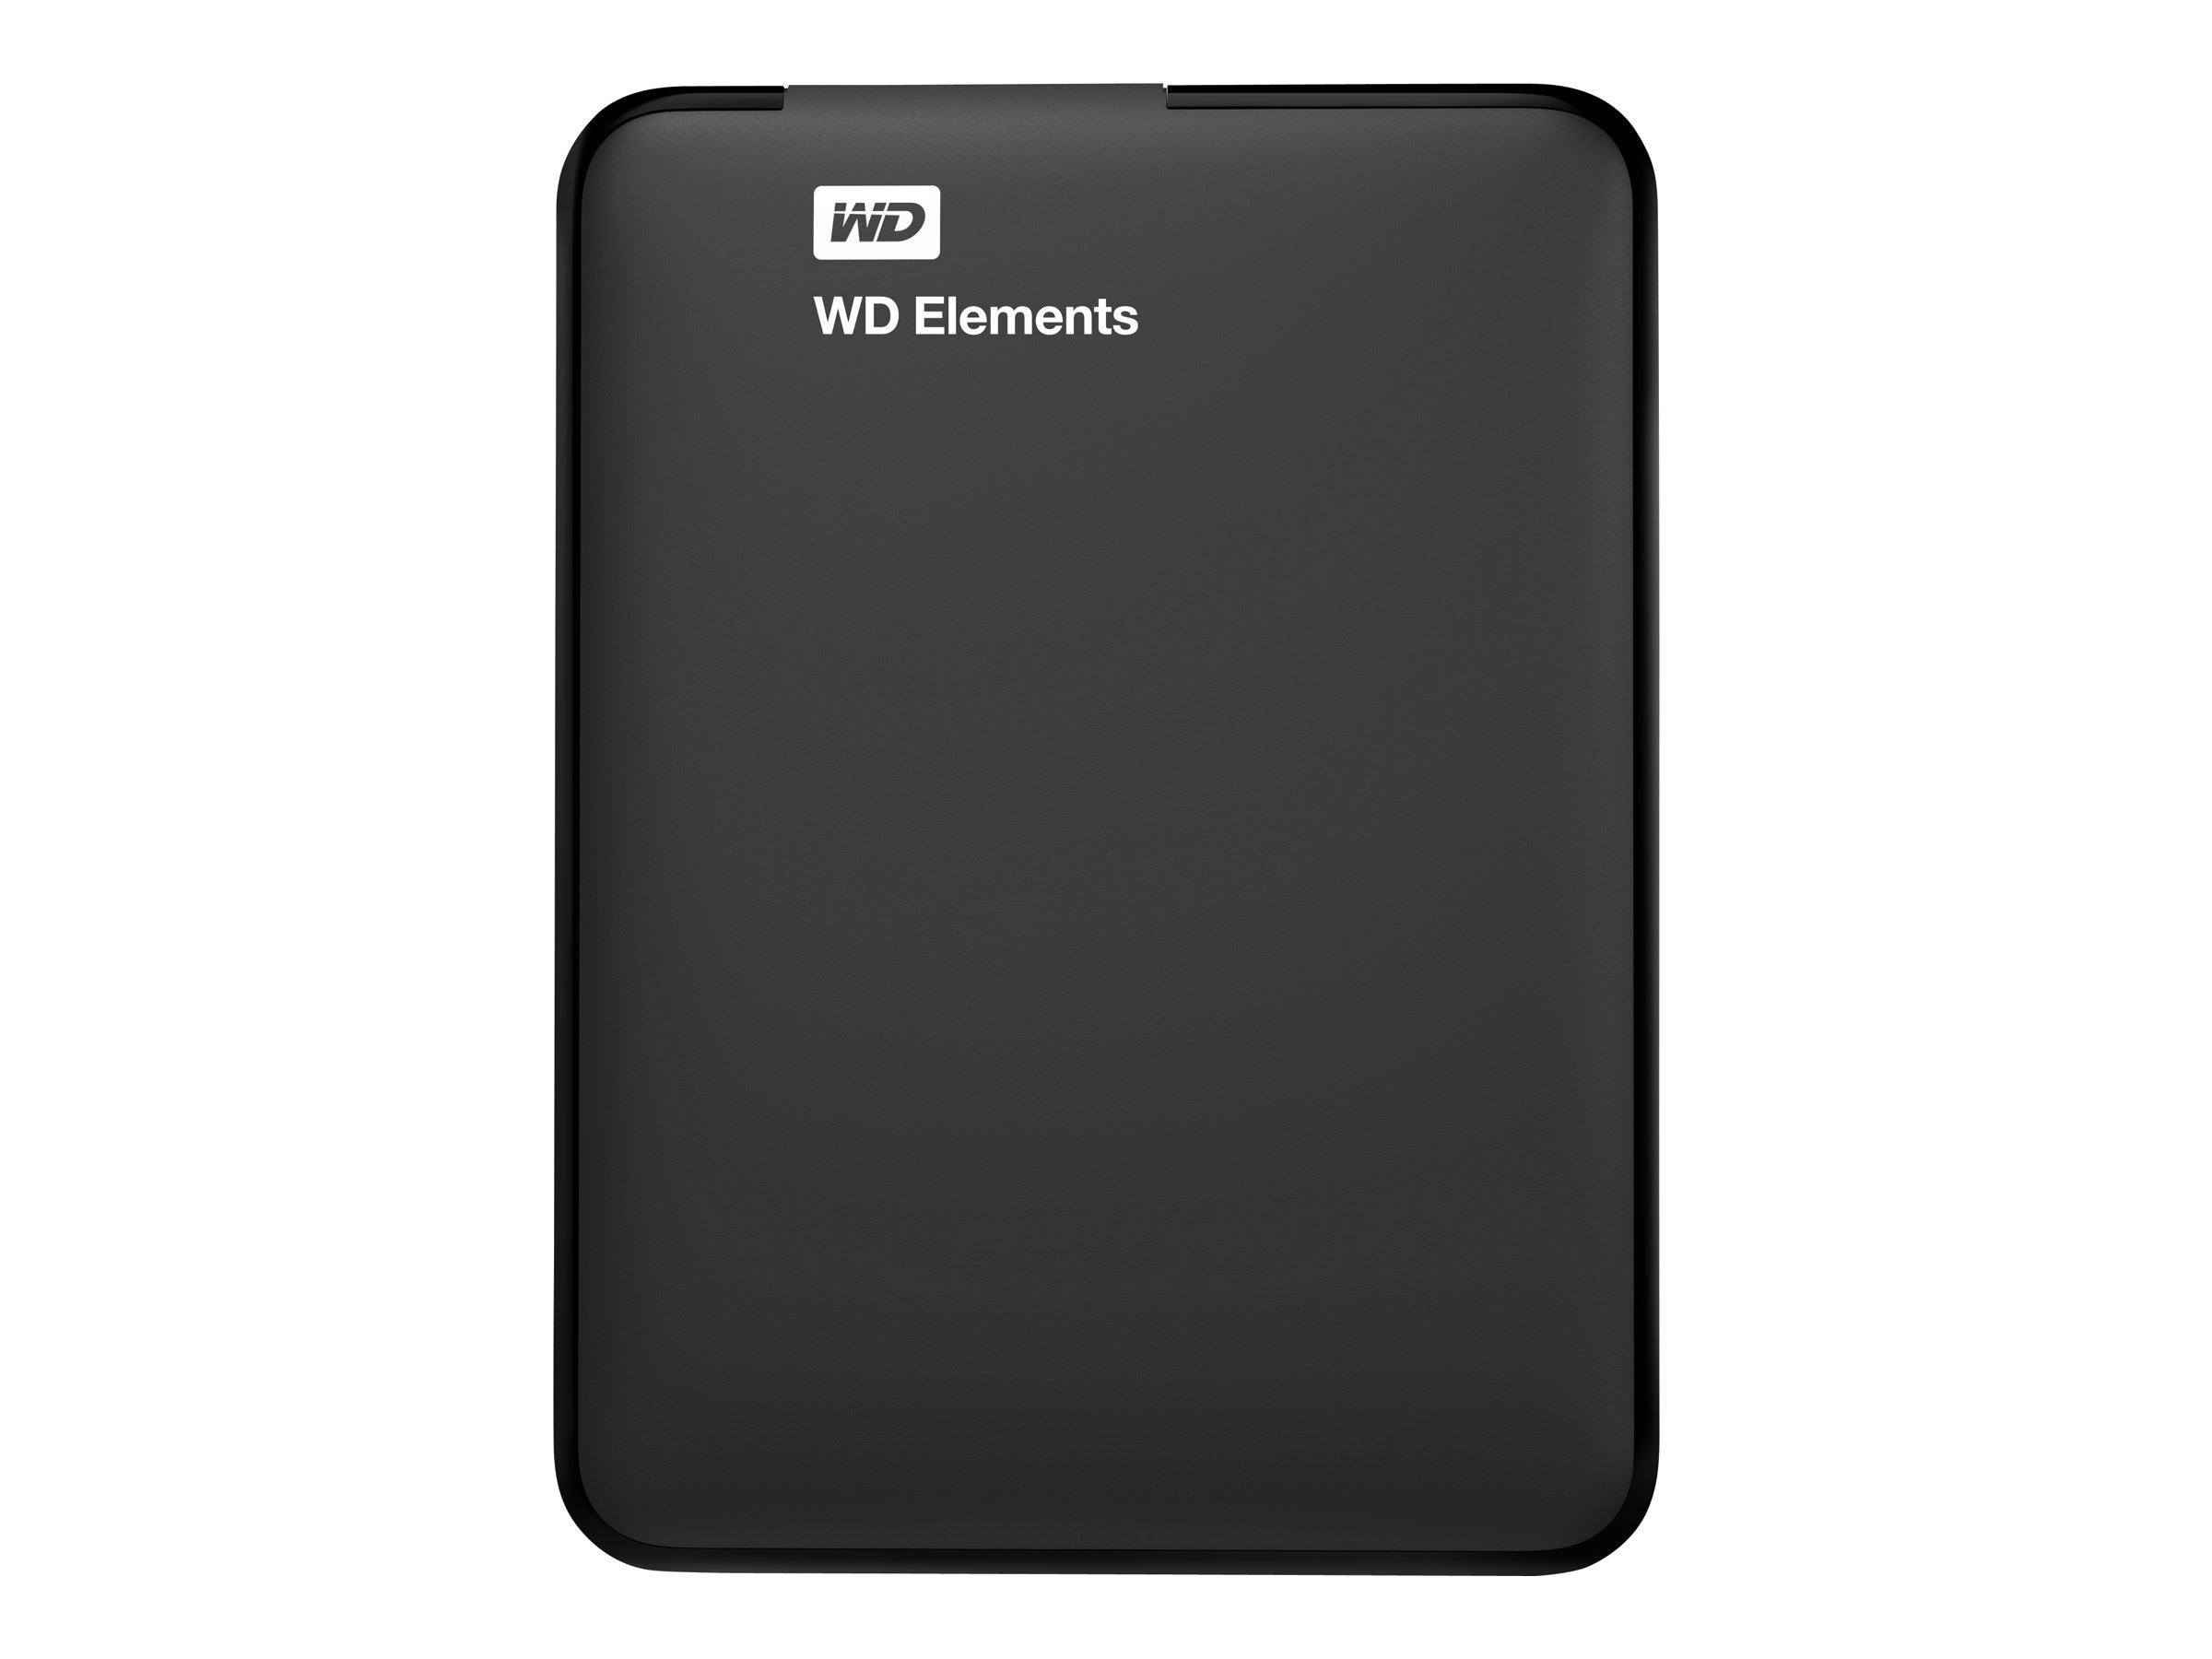 WD 1TB Elements USB 3.0 Portable Hard Drive, WDBUZG0010BBK-NESN